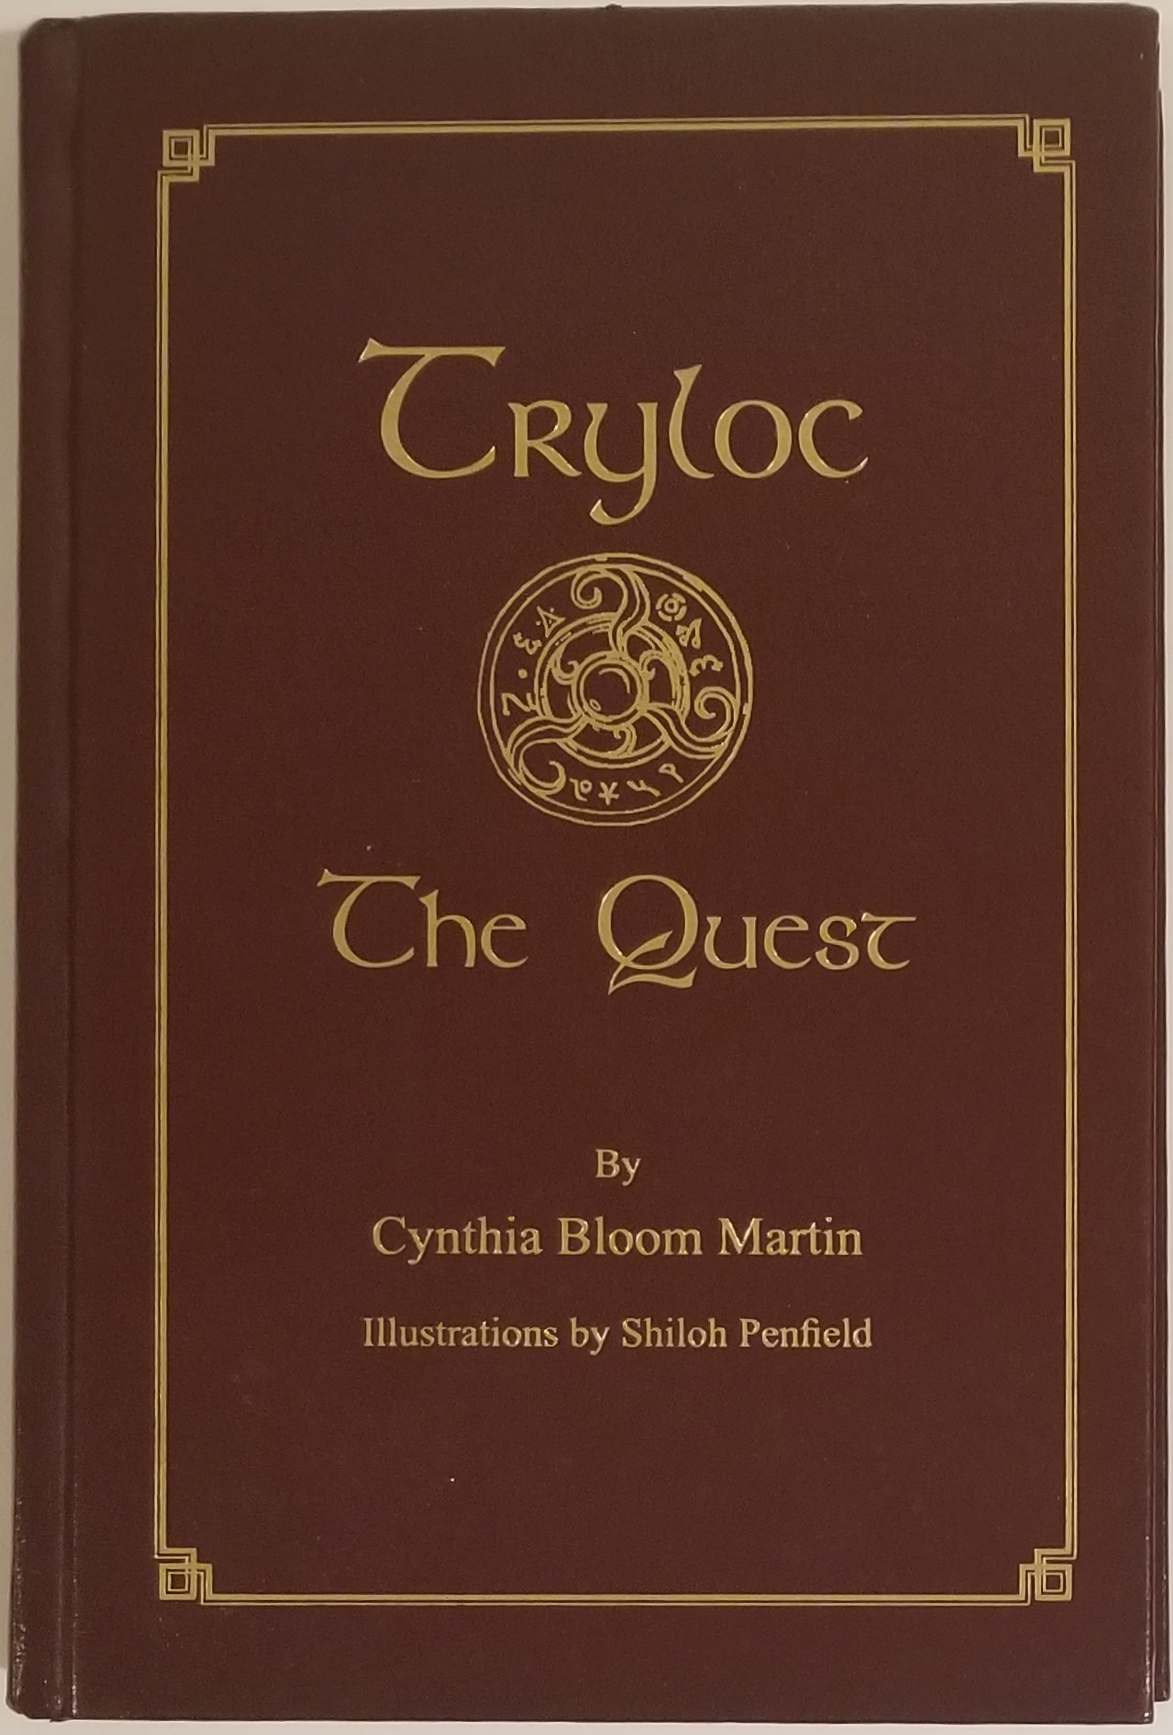 TRYLOC: THE QUEST. Cynthia Bloom Martin.